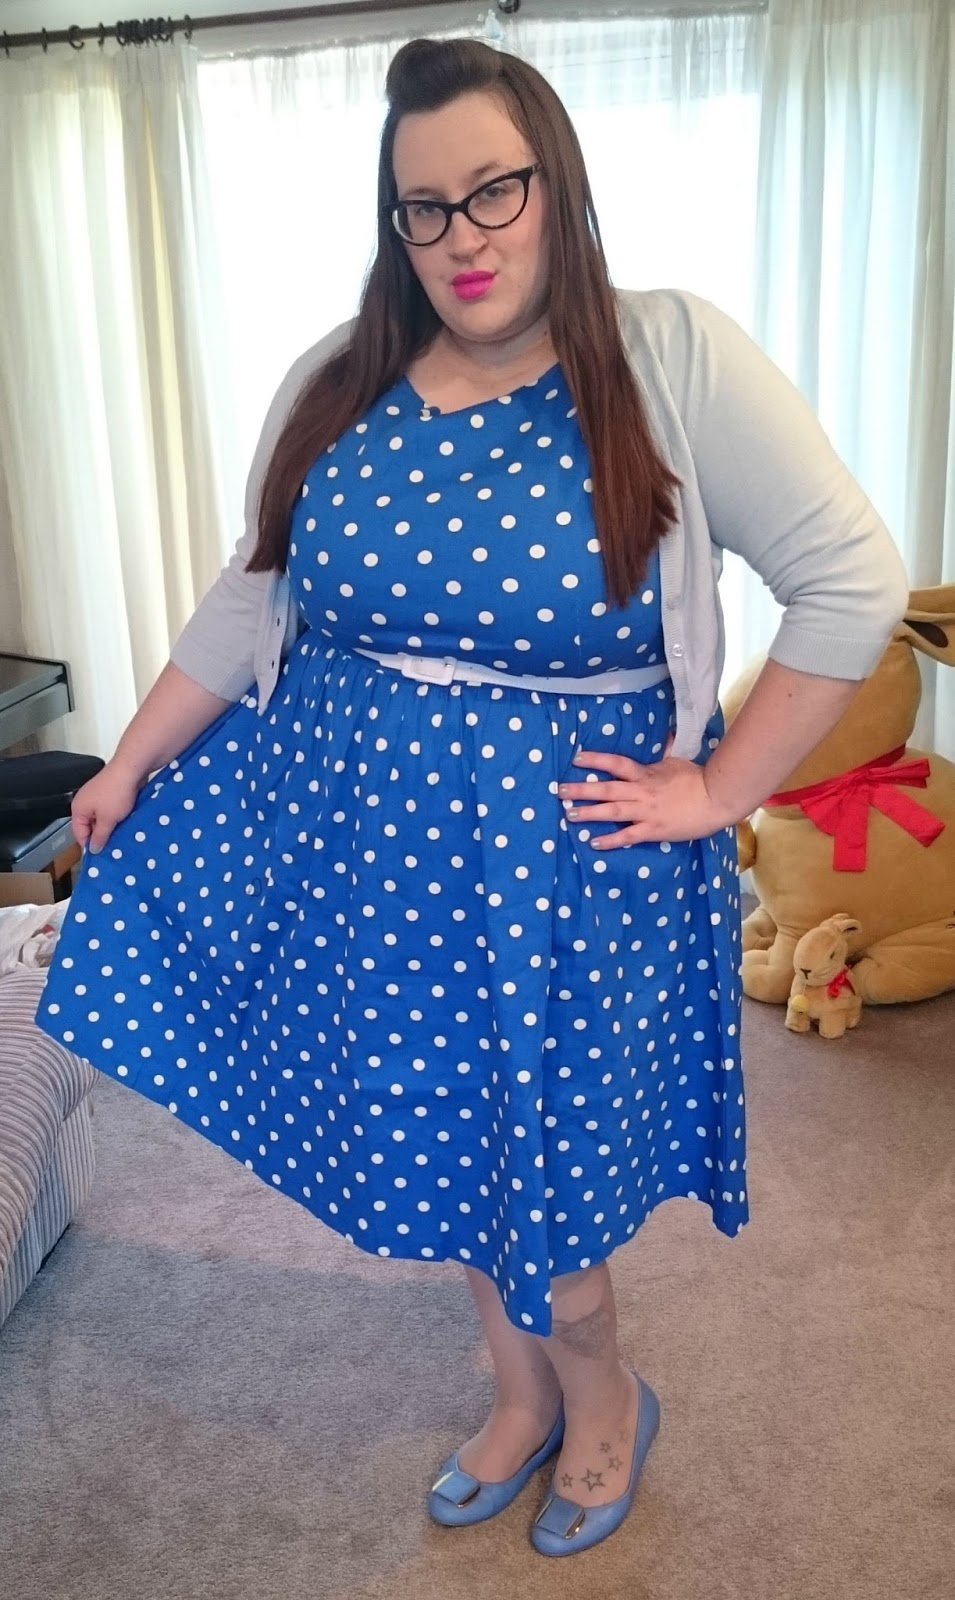 Lindy Bop Blue Audrey. 25 Oct 2015. Posted by Does My Blog Make Me Look Fat  ... c92eec626